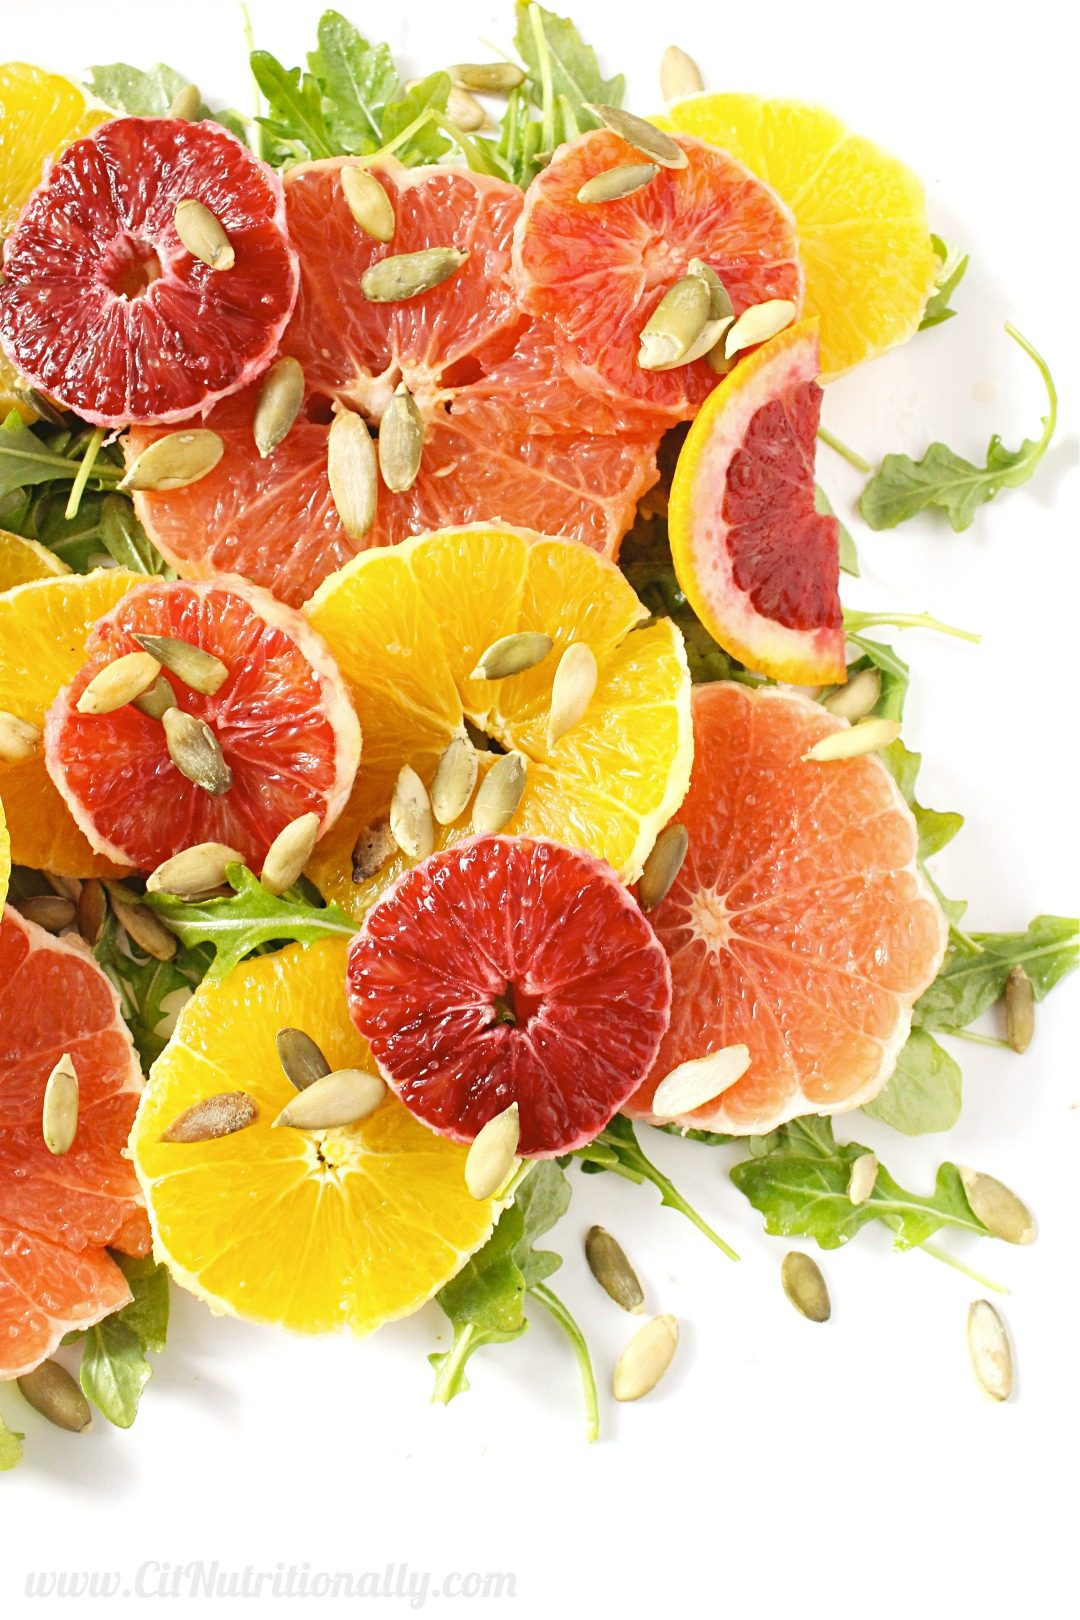 winter citrus and arugula salad c it nutritionally